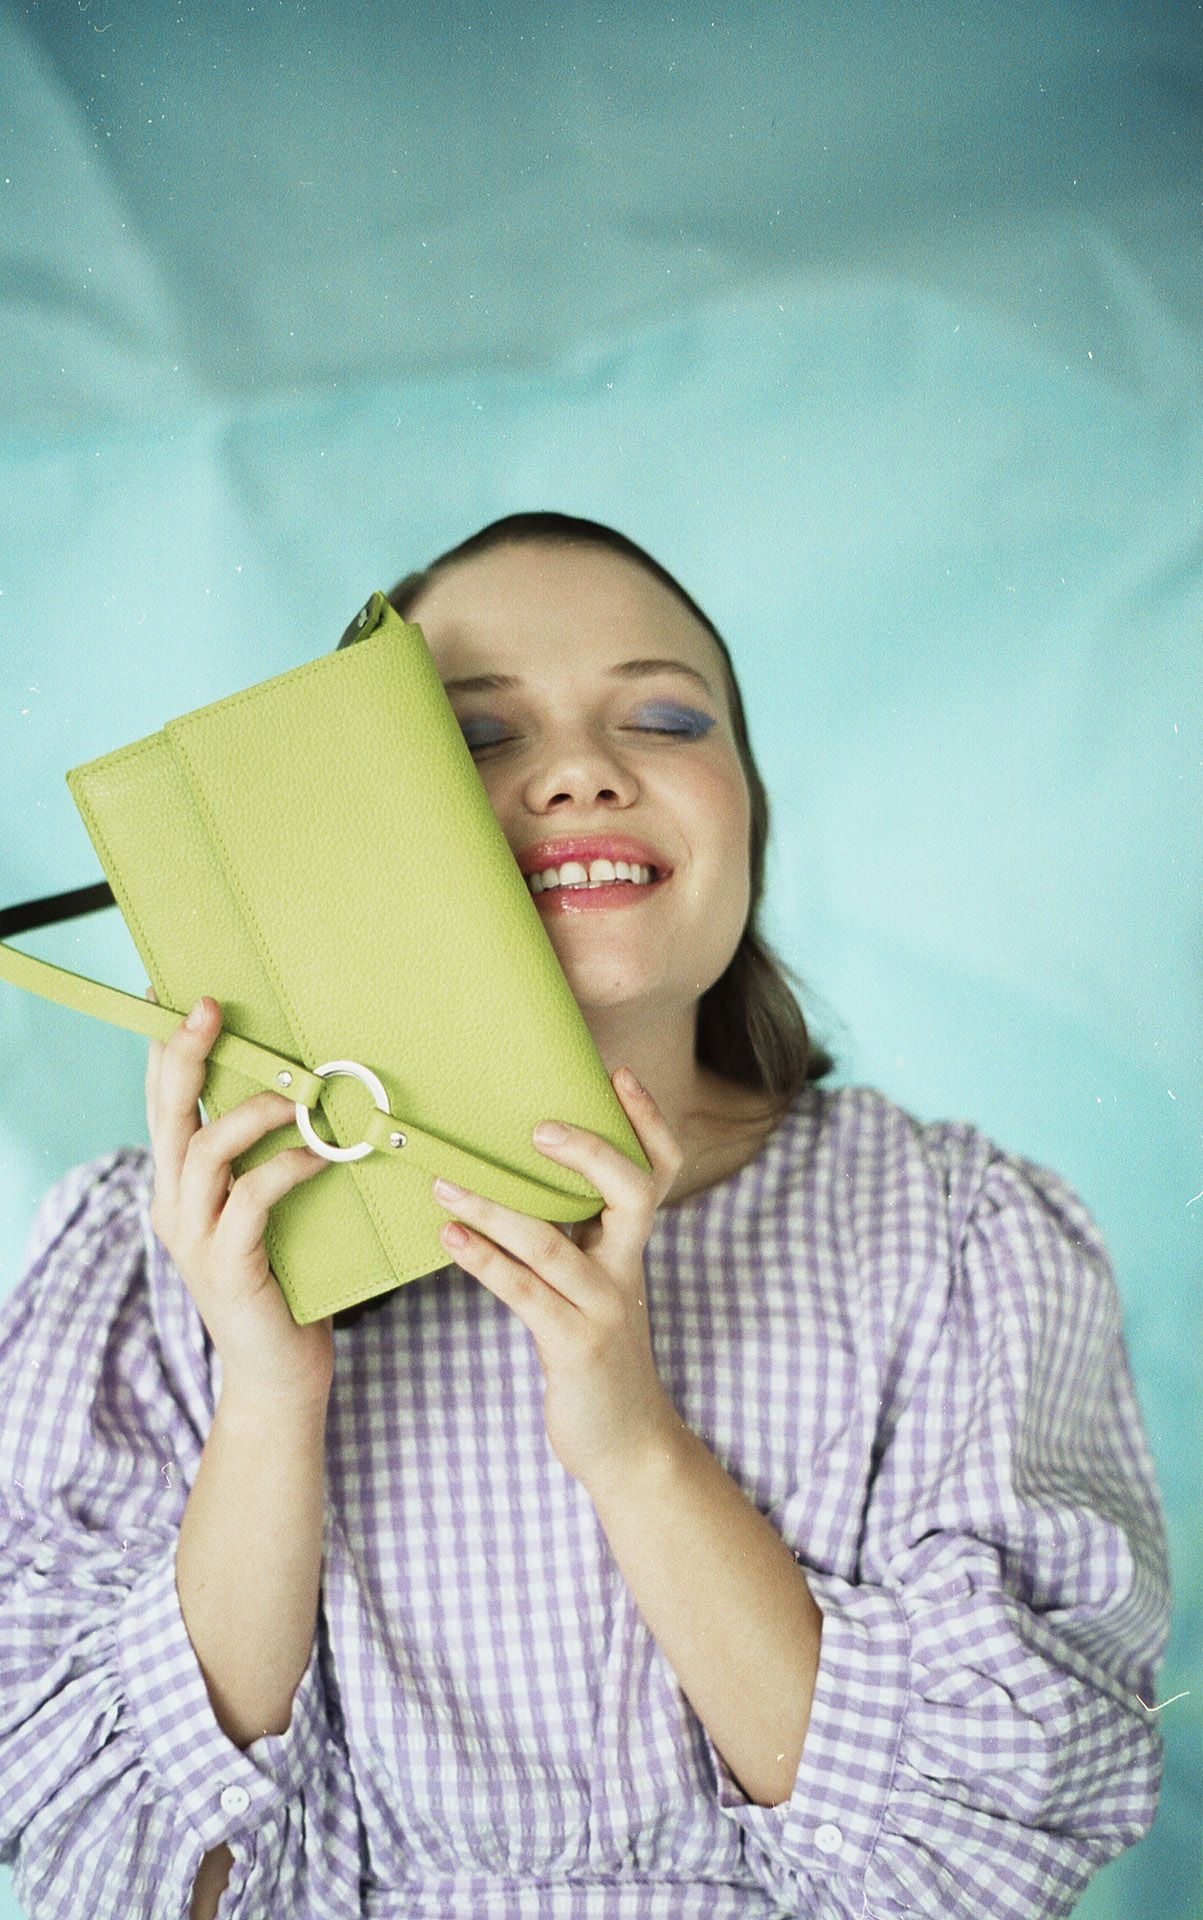 female model wearing purple and white checkered top smiling and holding light green leather purse against her face on light blue background for bouquet Montreal-brand Spring-Summer 2020 campaign with styling and artistic direction by Studio TB